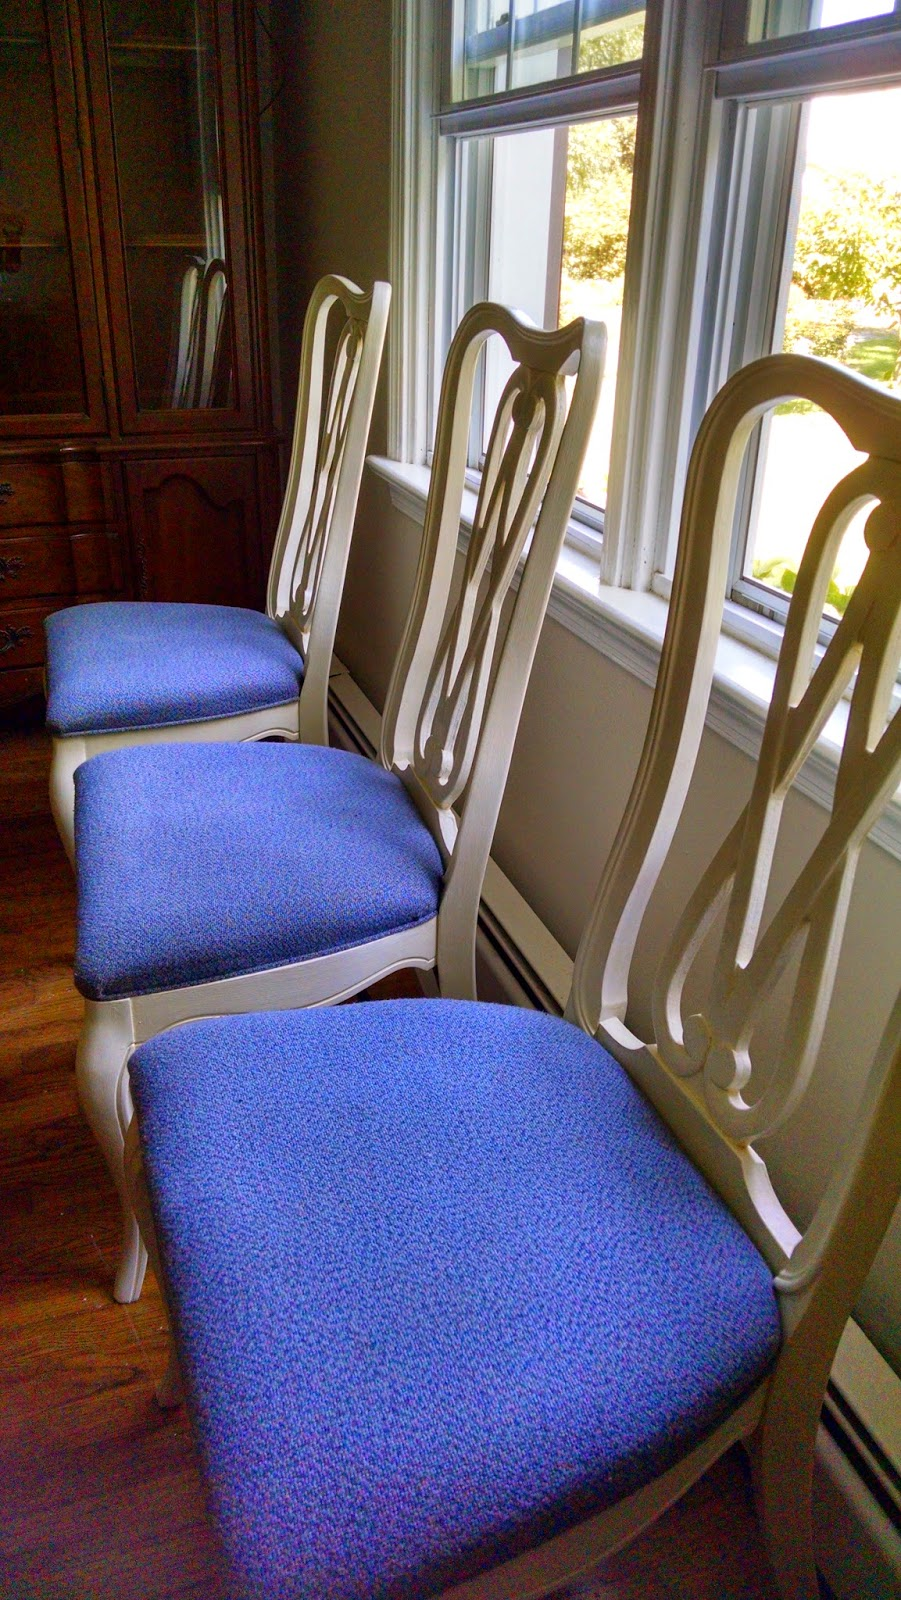 1950s Dining Room Furniture What39s Going On How To Paint 195039s Solid Wood Dining Room Chairs